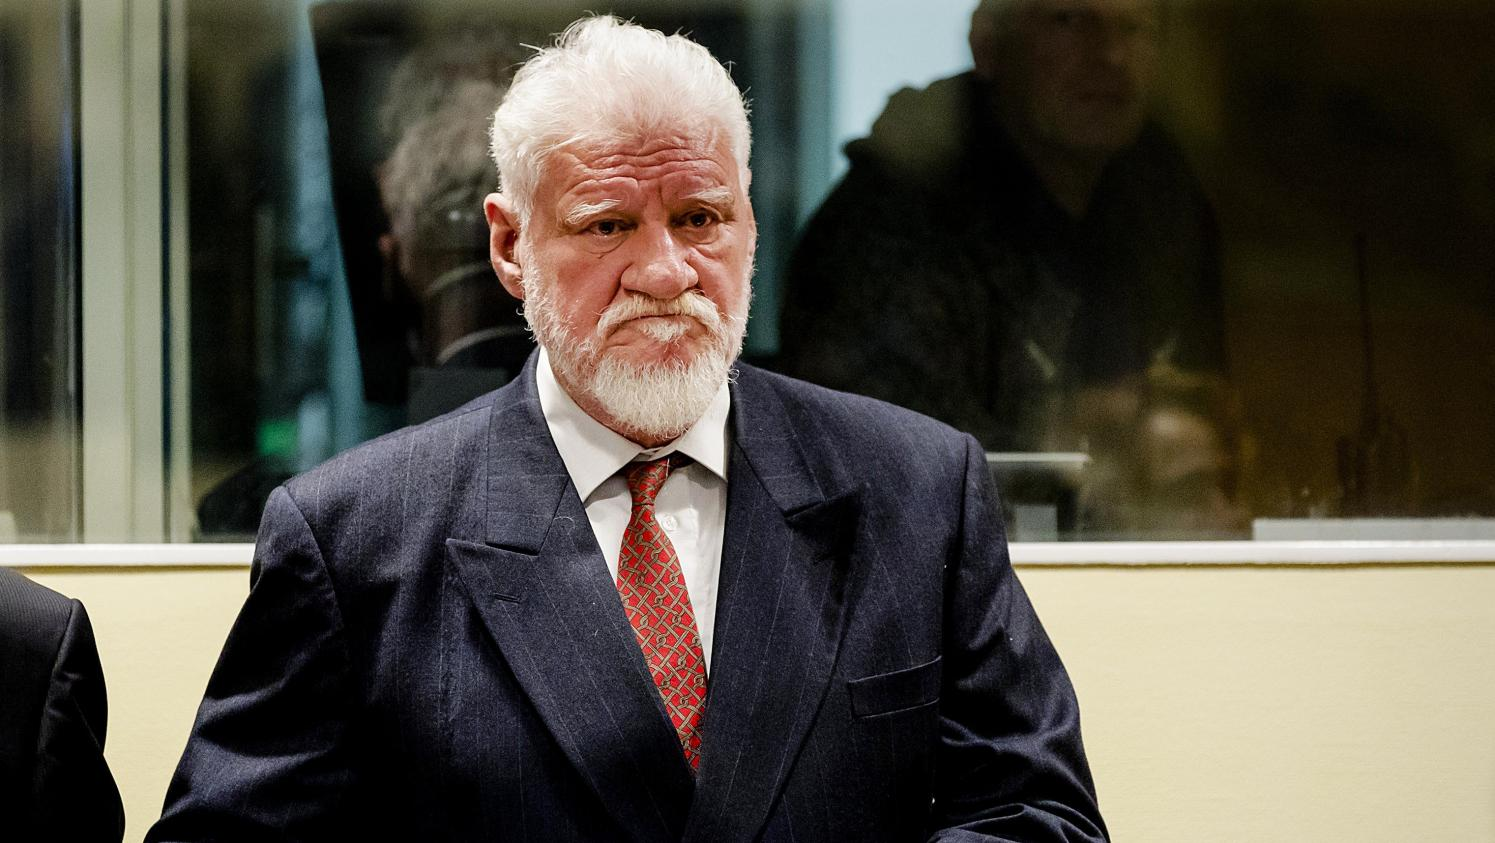 comment le criminel croate slobodan praljak a t il pu se suicider pendant son proc s. Black Bedroom Furniture Sets. Home Design Ideas